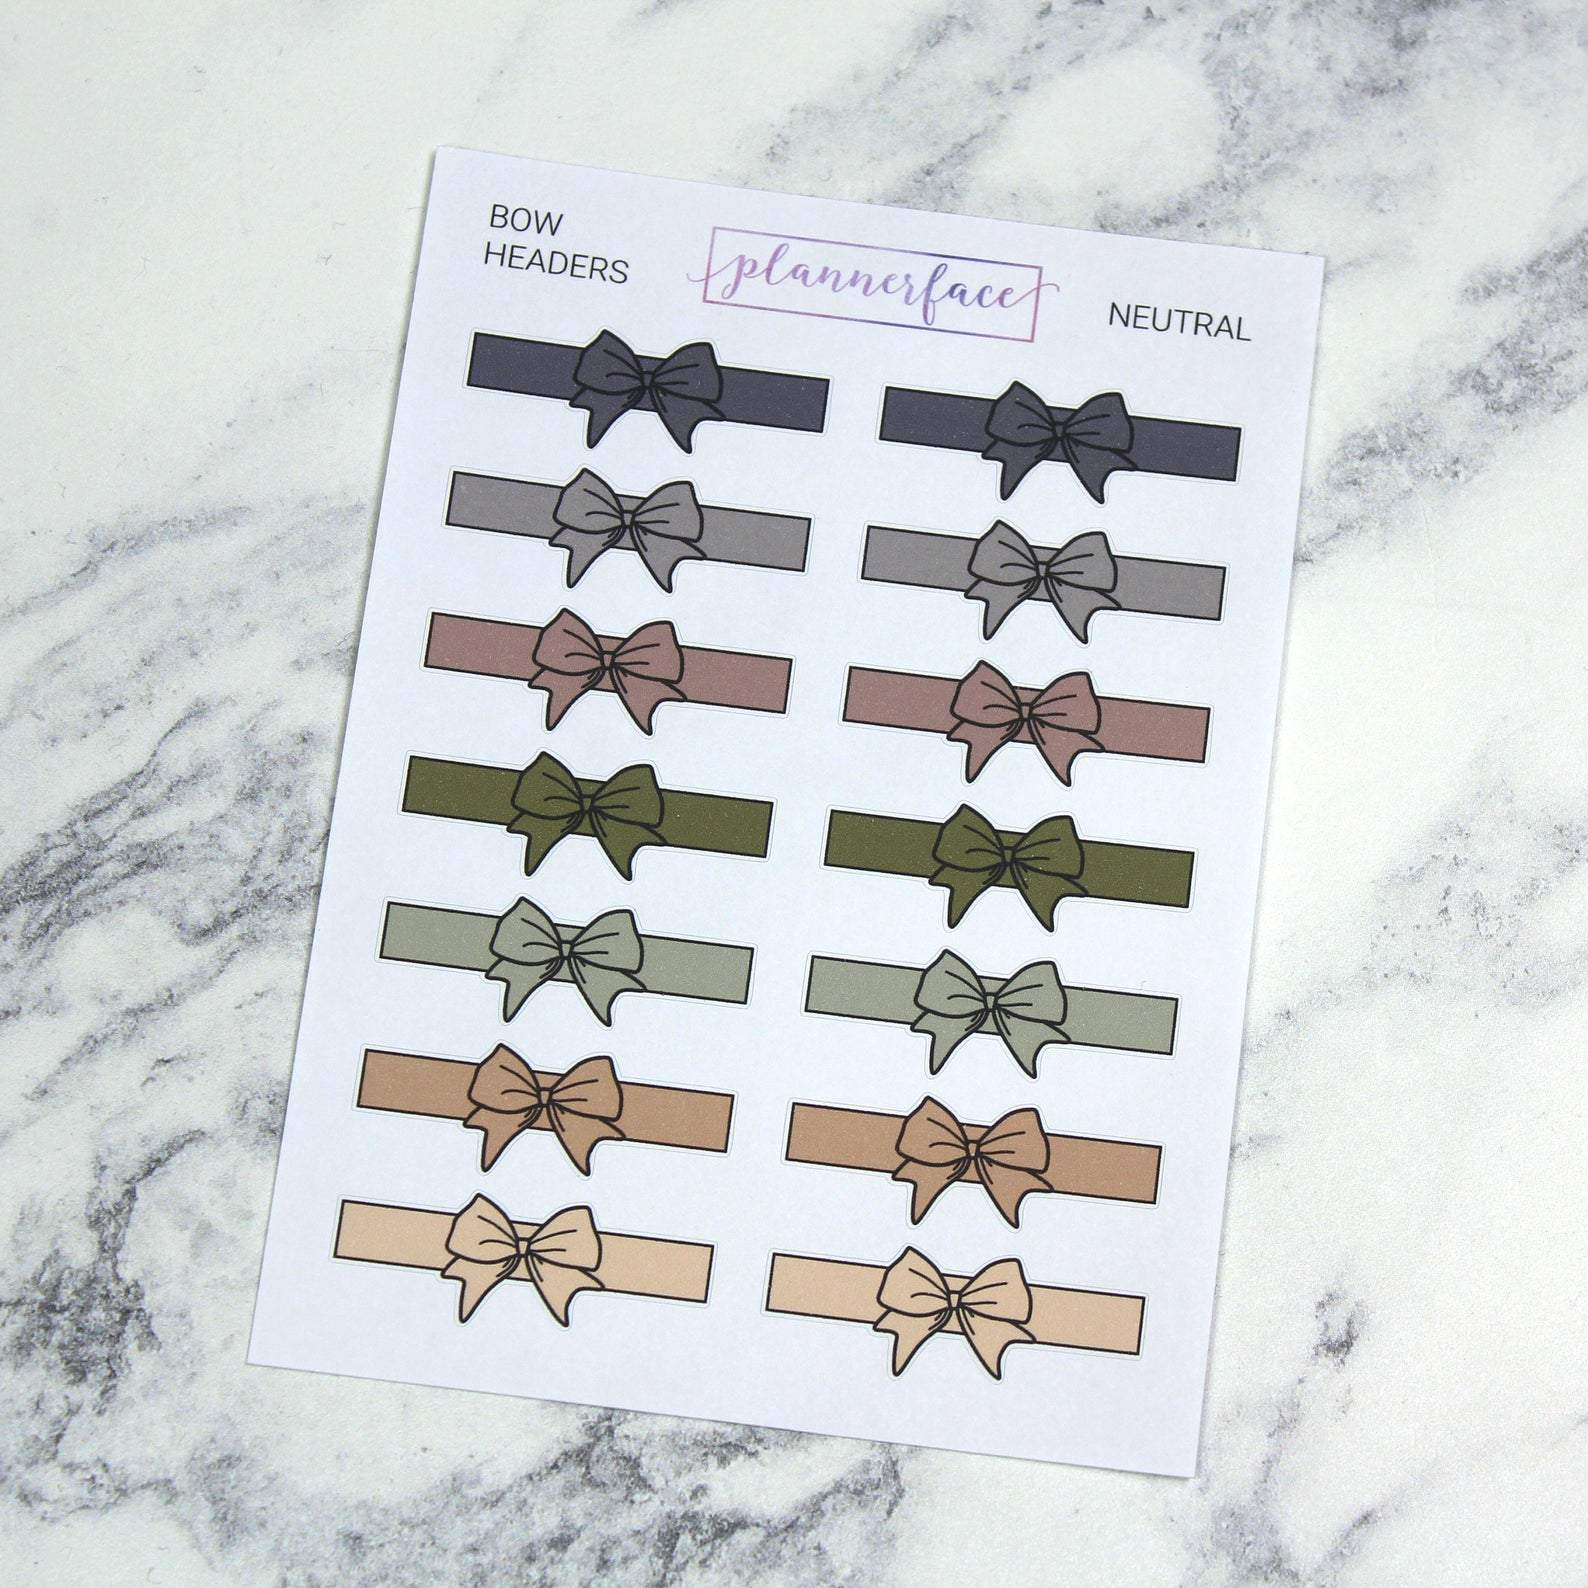 Plannerface Neutral Bow Headers Planner Stickers